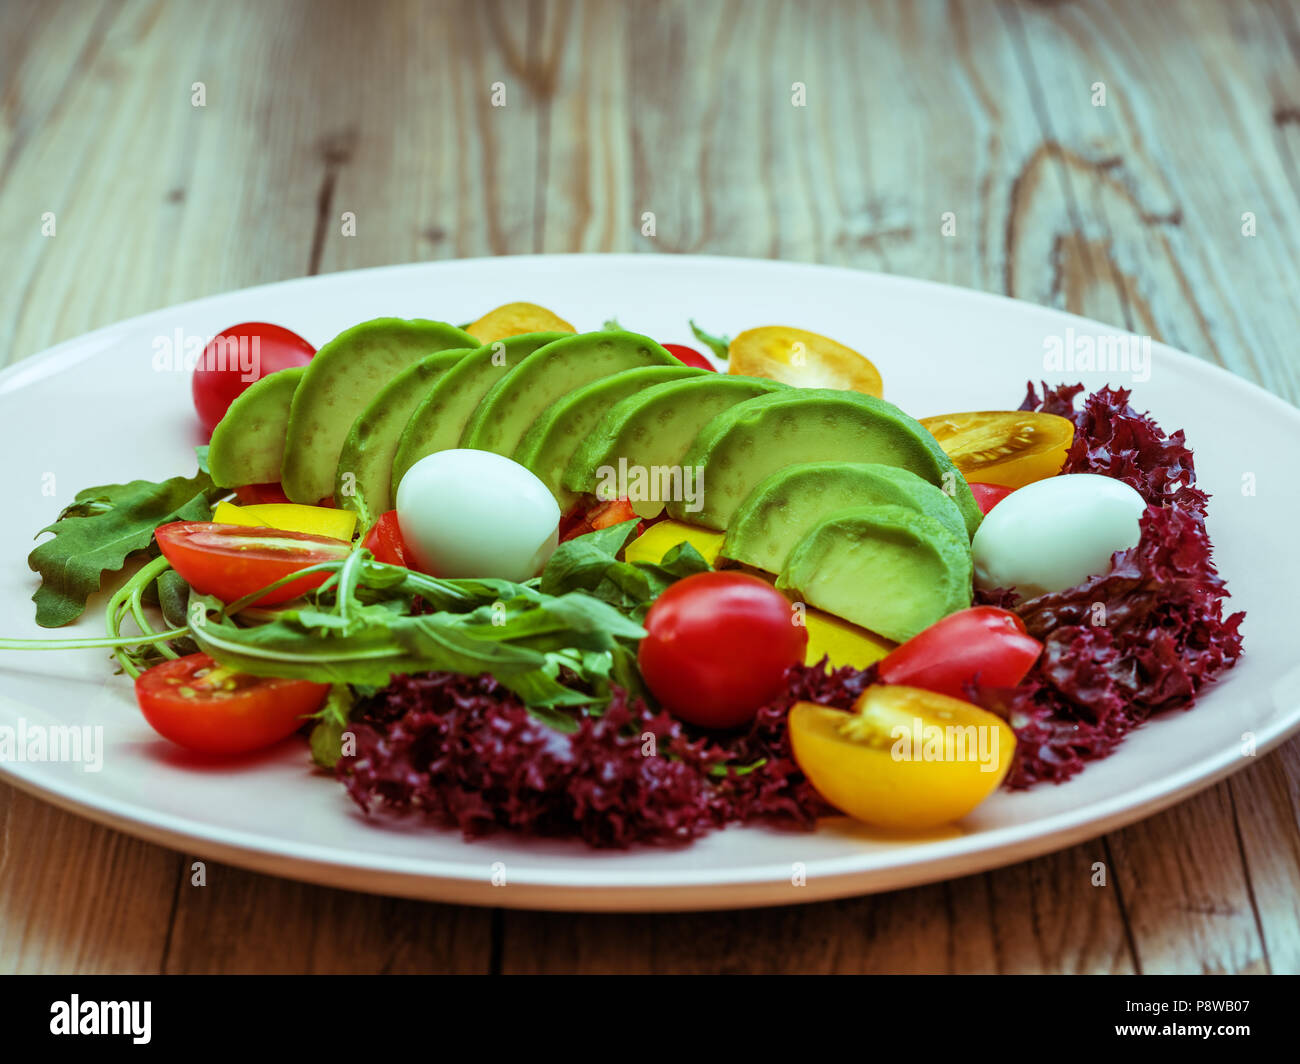 Dietary avocado salad with cherry tomatoes, quail eggs, yellow and red pepper and lettuce. Avocado is source of nutrition, vitamins. Studio shot. - Stock Image